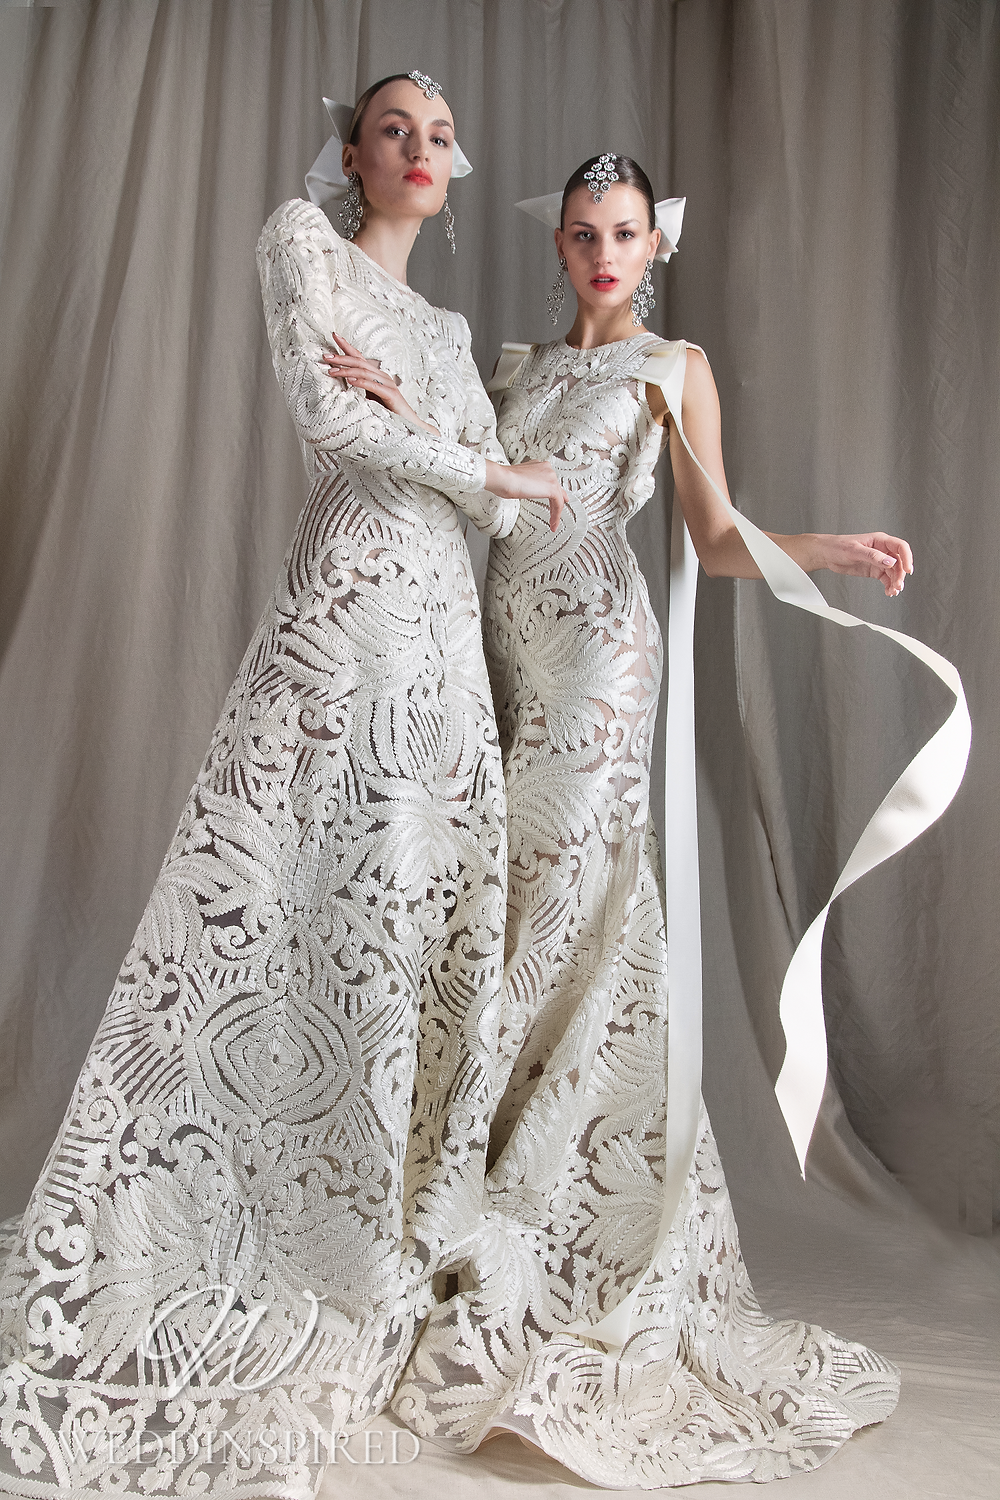 A Naeem Khan 2022 lace A-line wedding dress with long sleeves